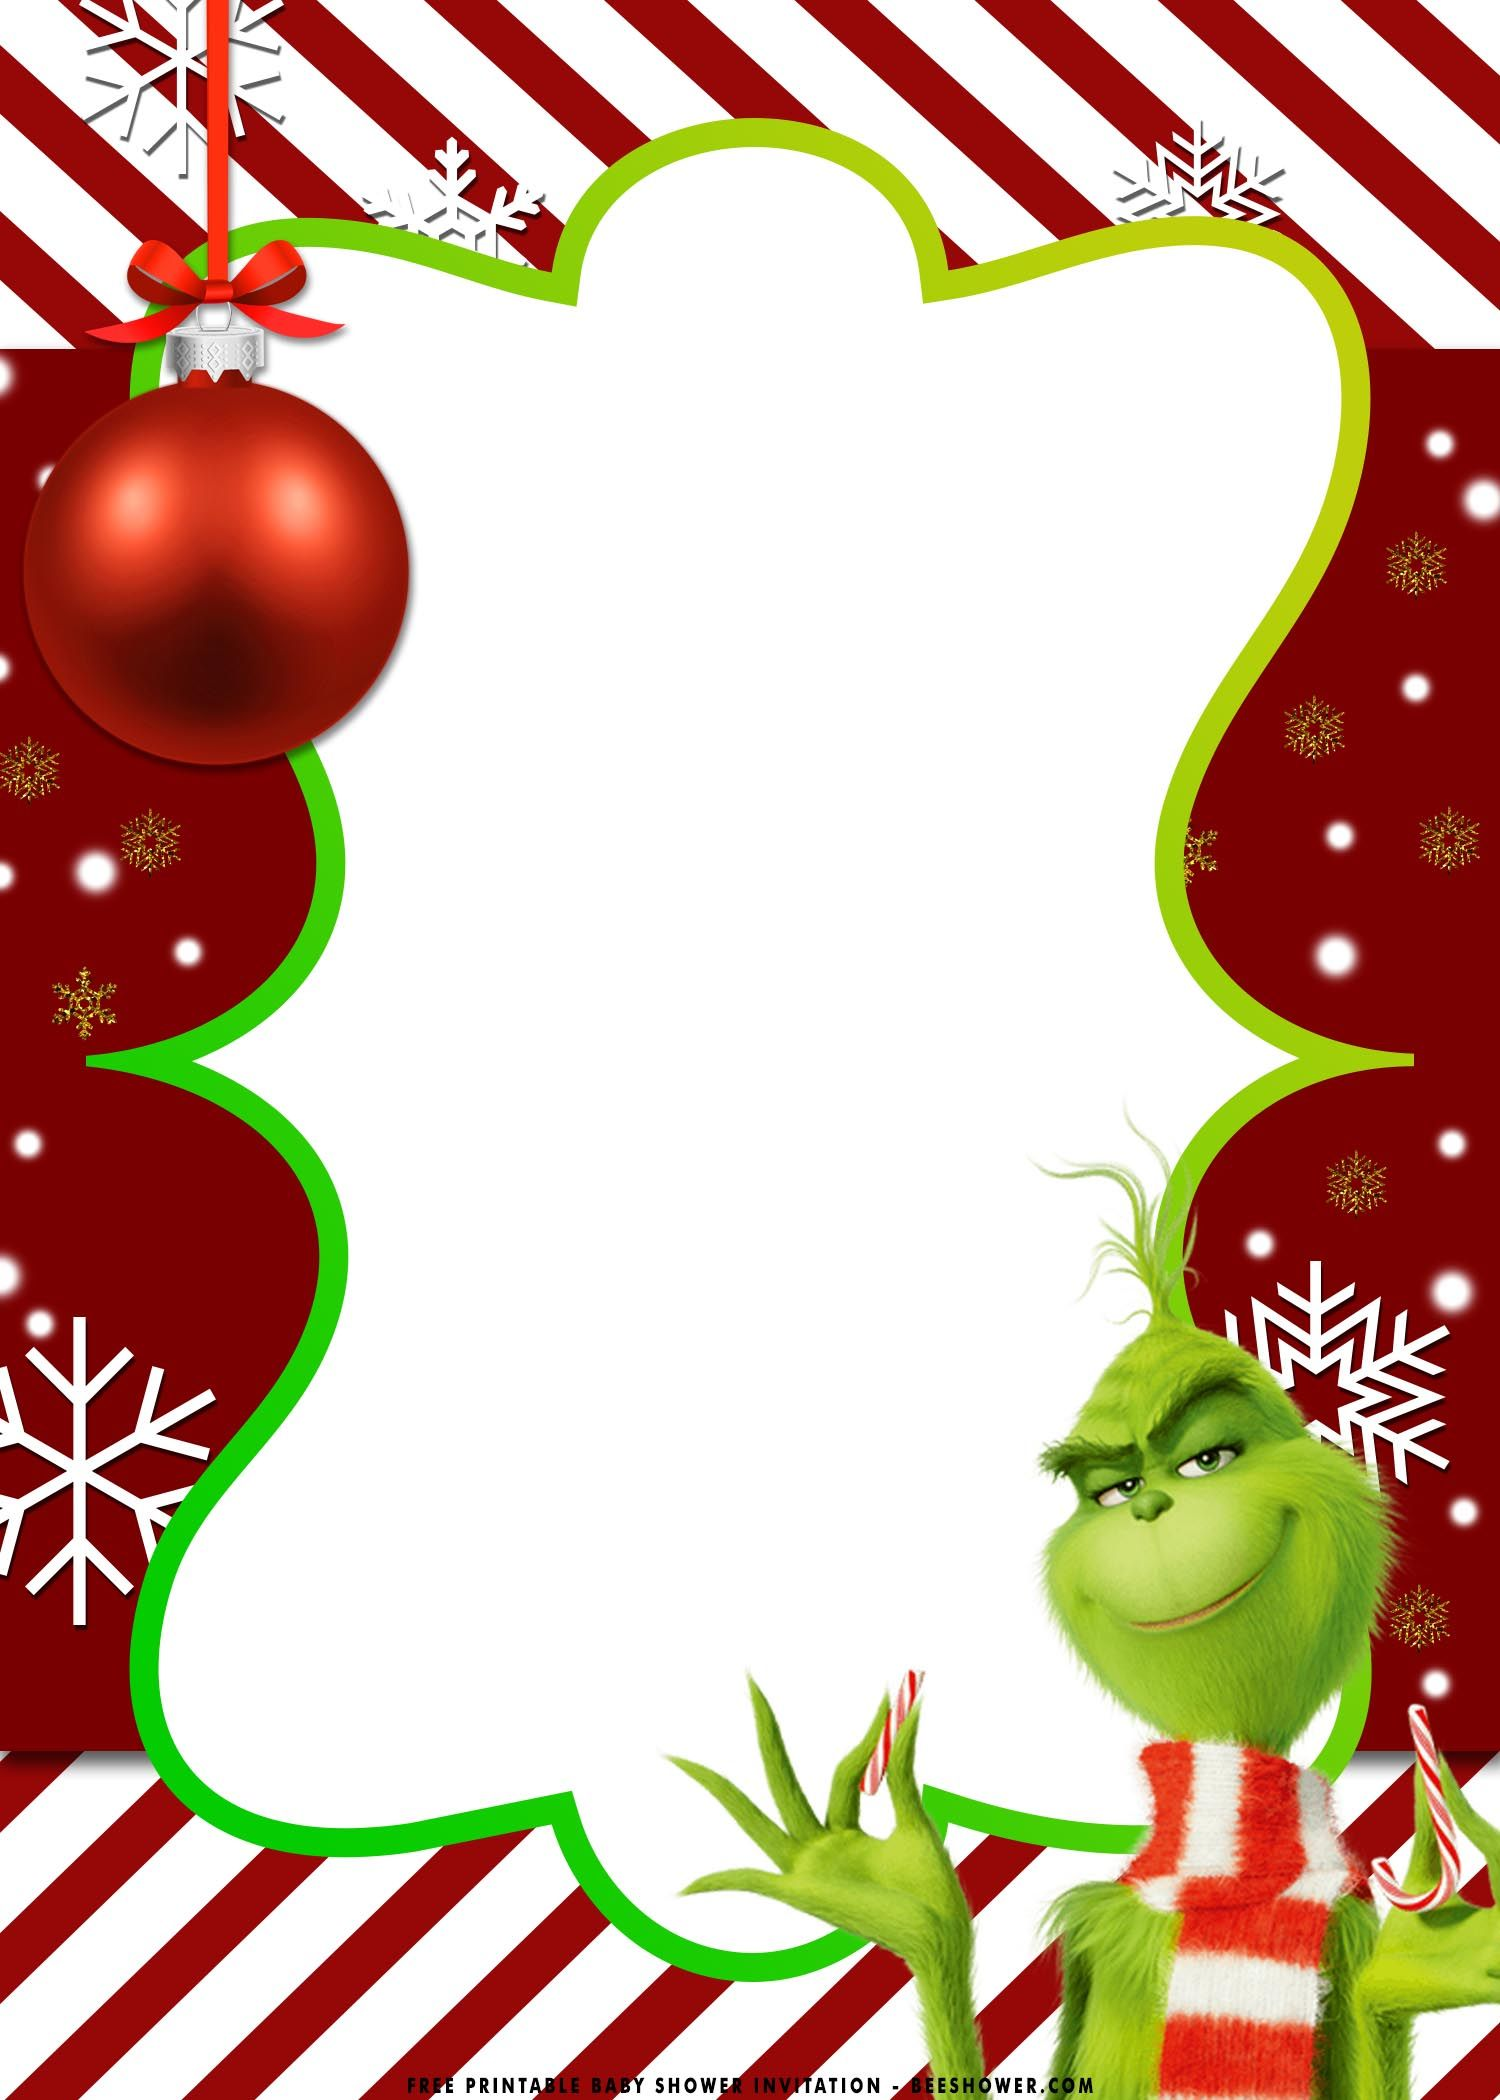 Free Printable Christmas Grinch Baby Shower Invitation Templates Free Printable Baby Shower Invitations Free Christmas Printables Christmas Cards Free